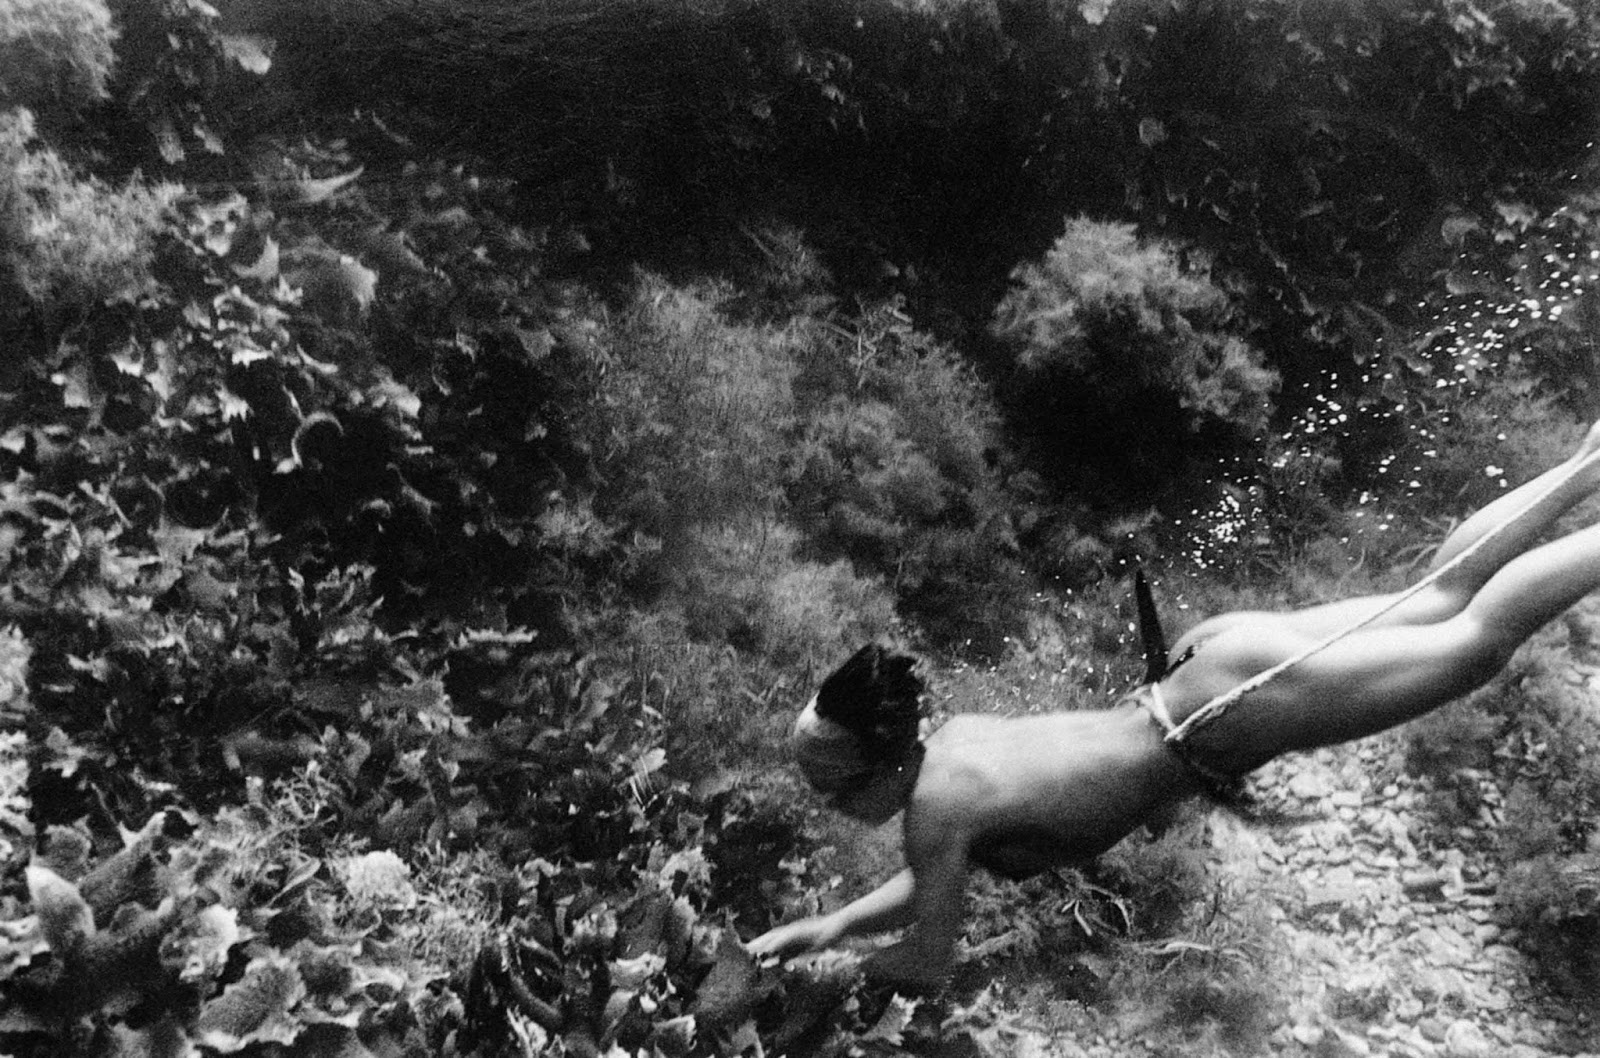 Traditional ama divers usually wore only a fundoshi (loincloth).